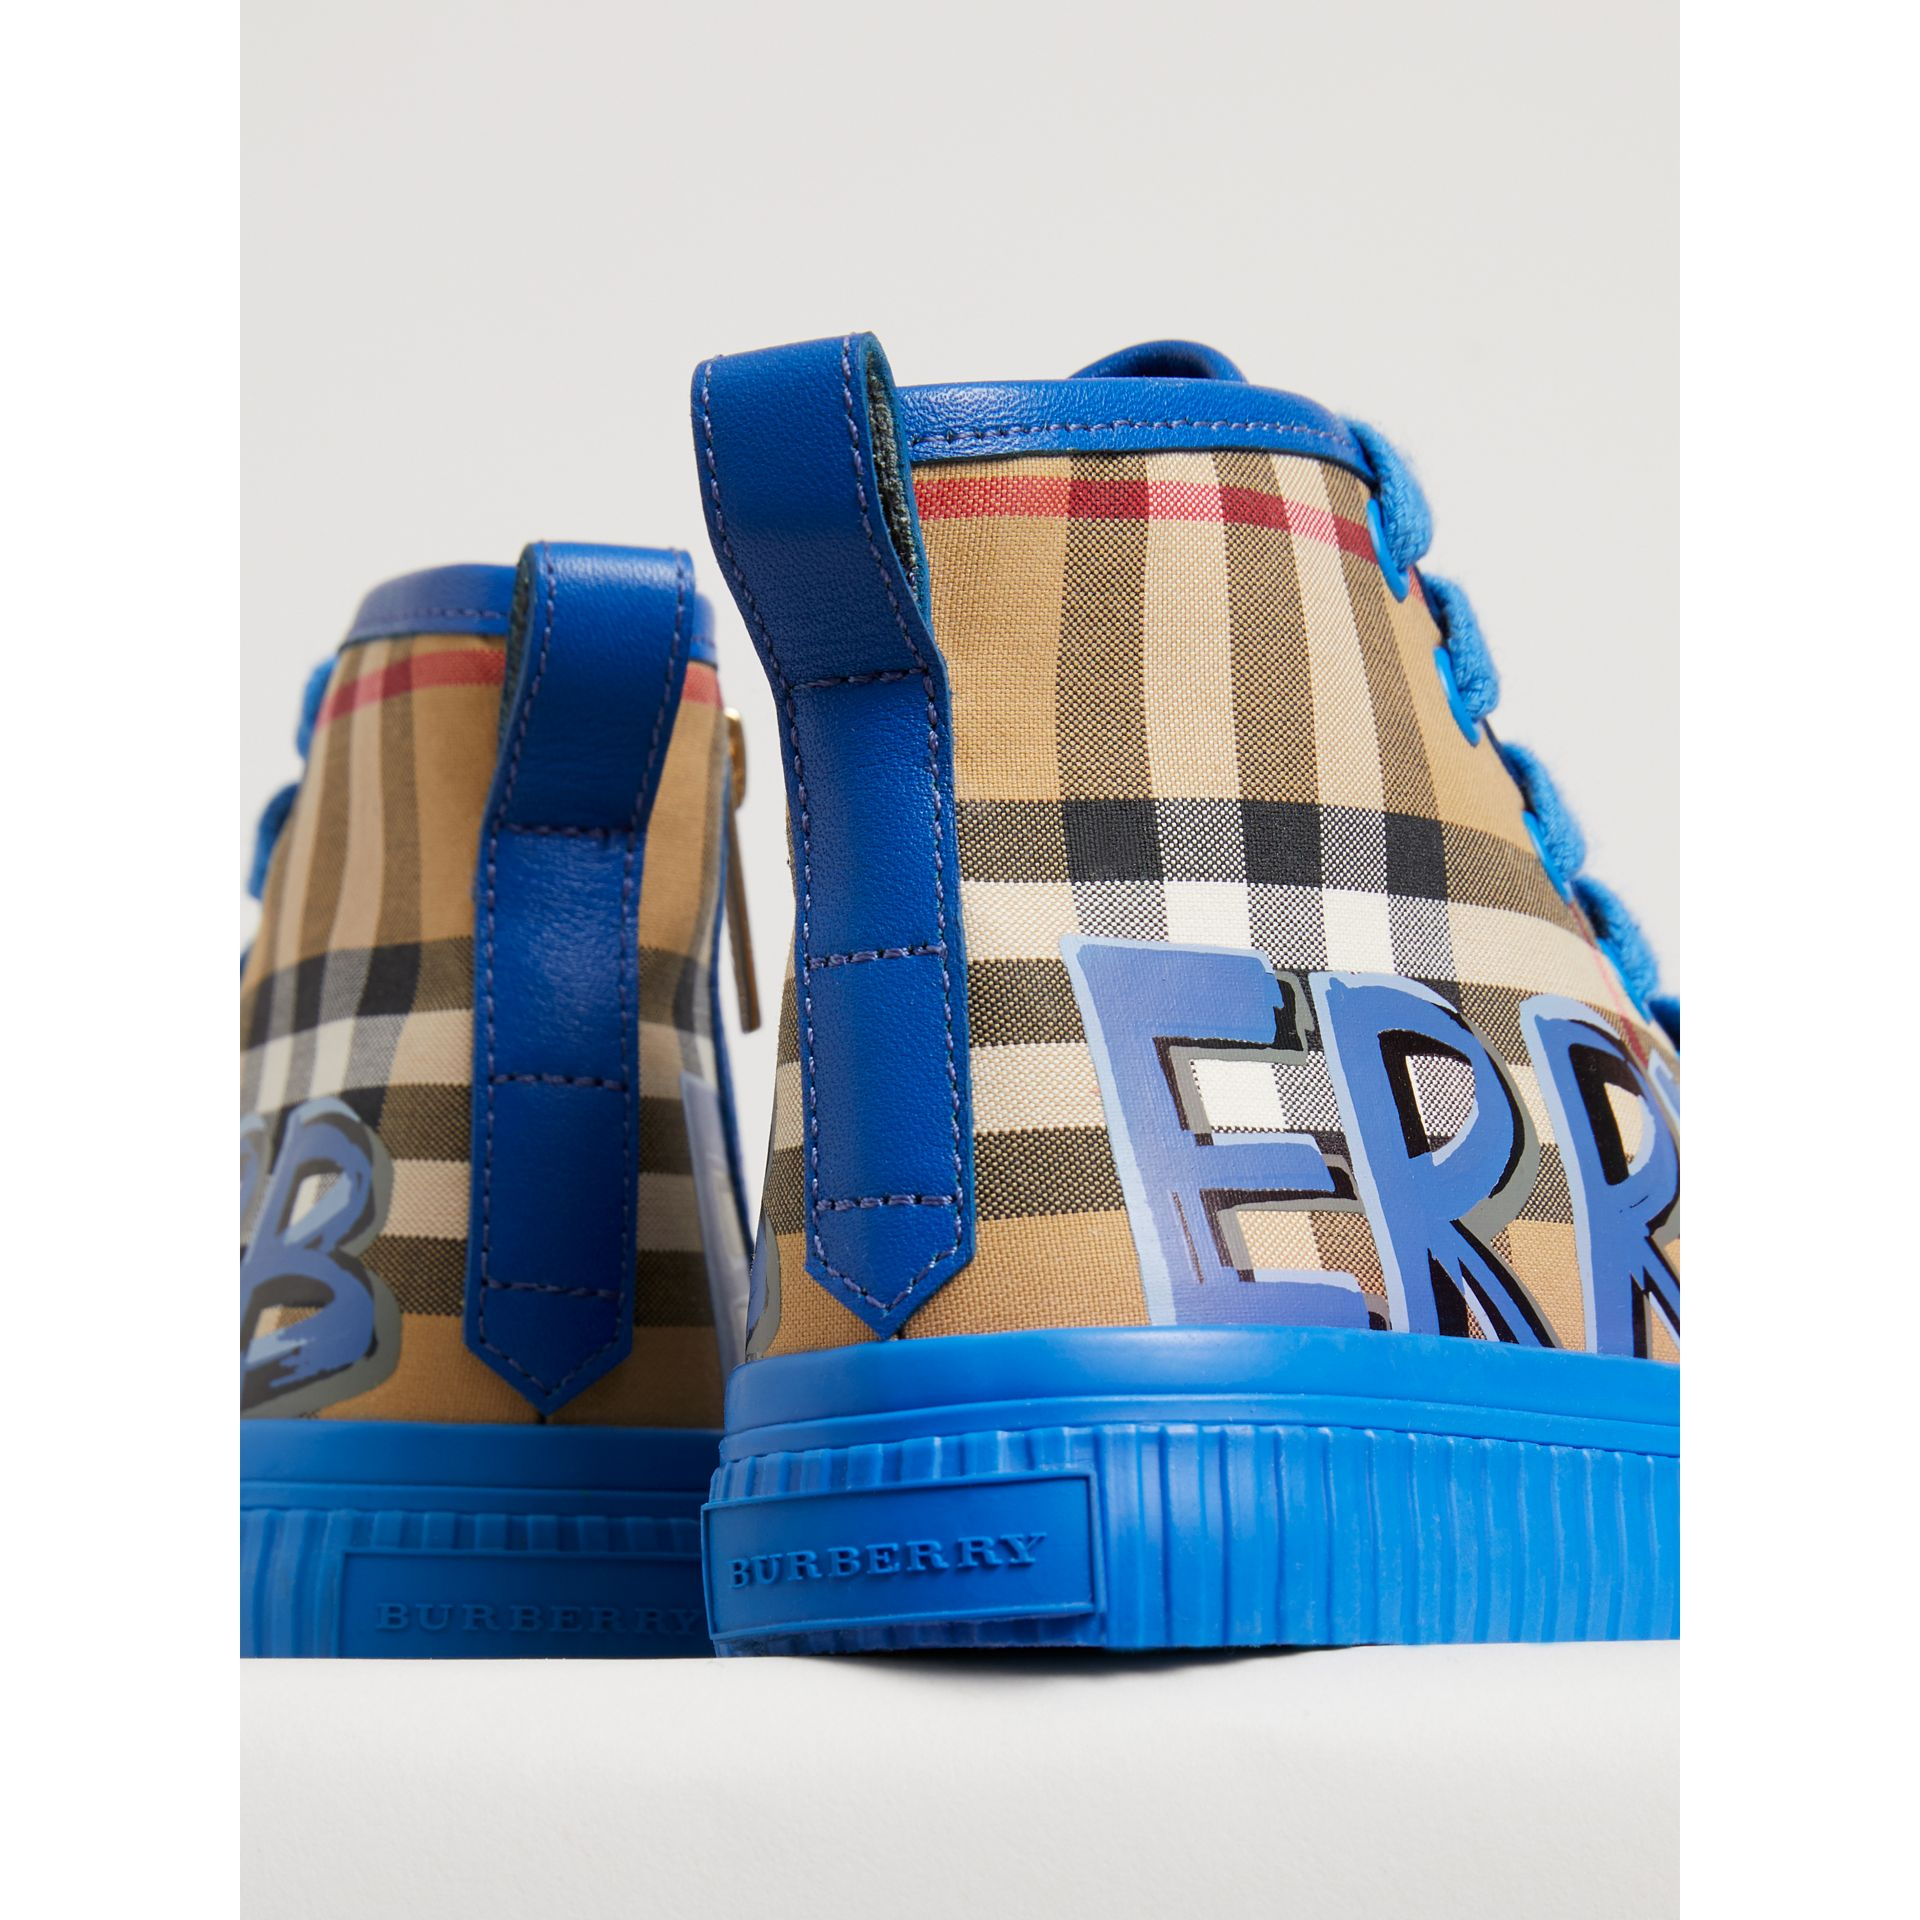 Graffiti Vintage Check High-top Sneakers in Bright Sky Blue | Burberry United Kingdom - gallery image 1